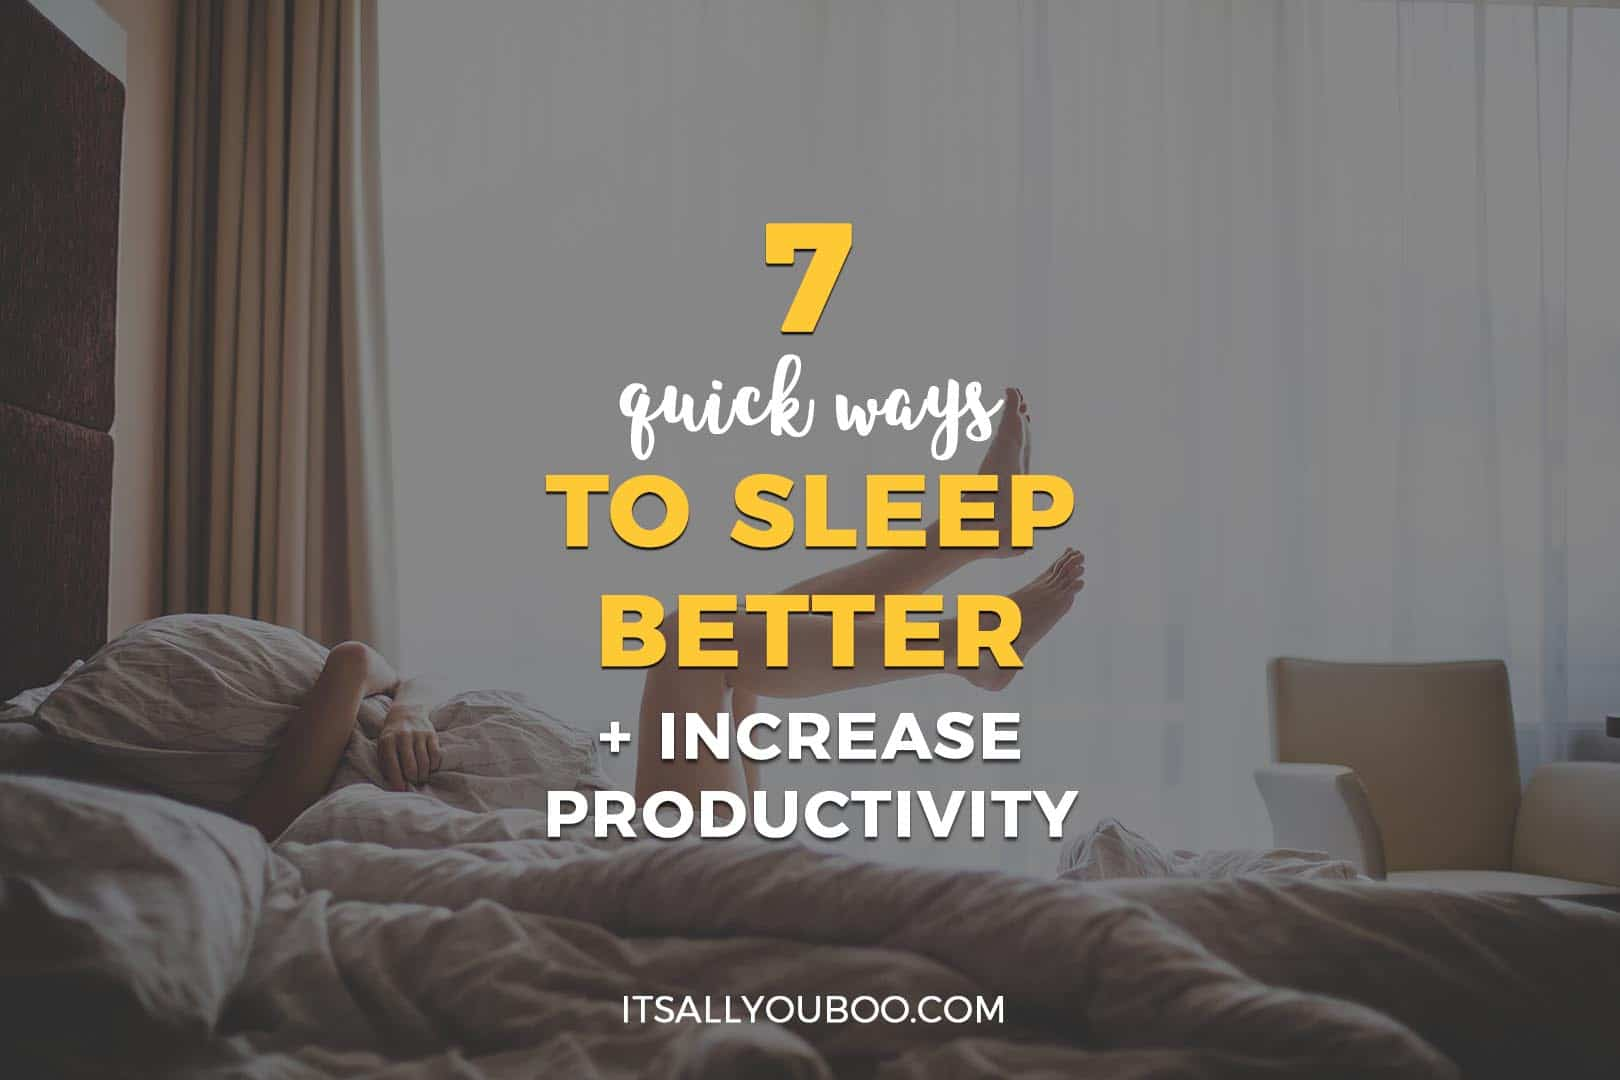 7 Quick Ways to Sleep Better and Increase Productivity